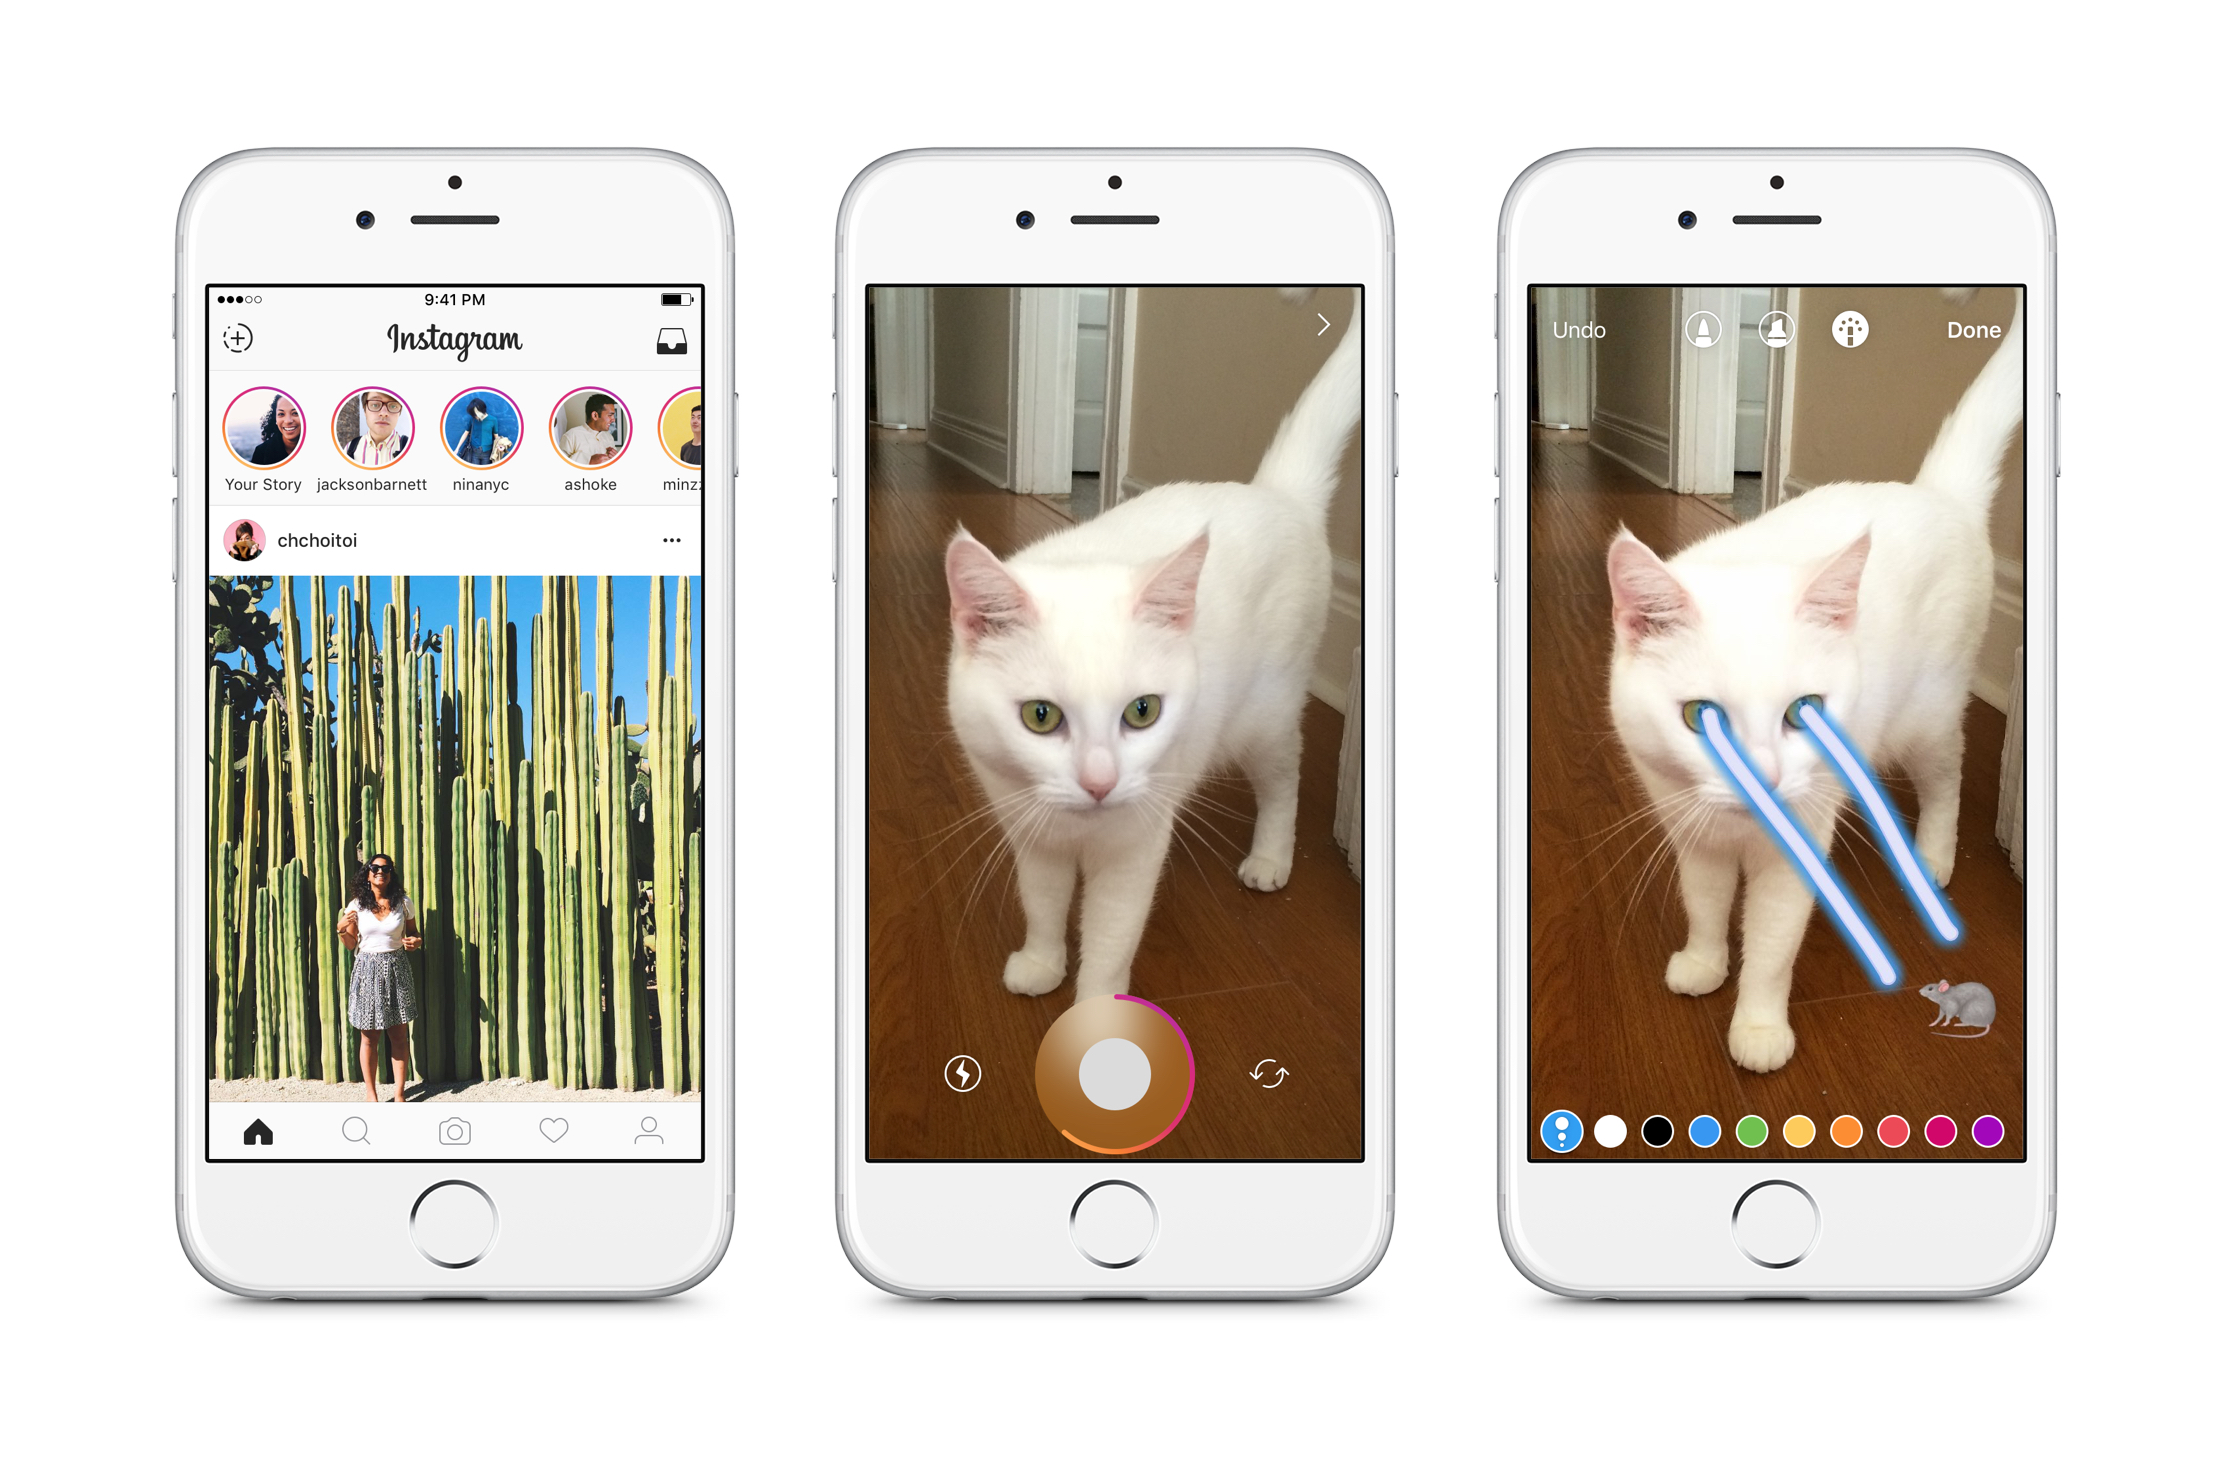 Instagram Stories lets you share photos and videos that disappear after 24 hours.